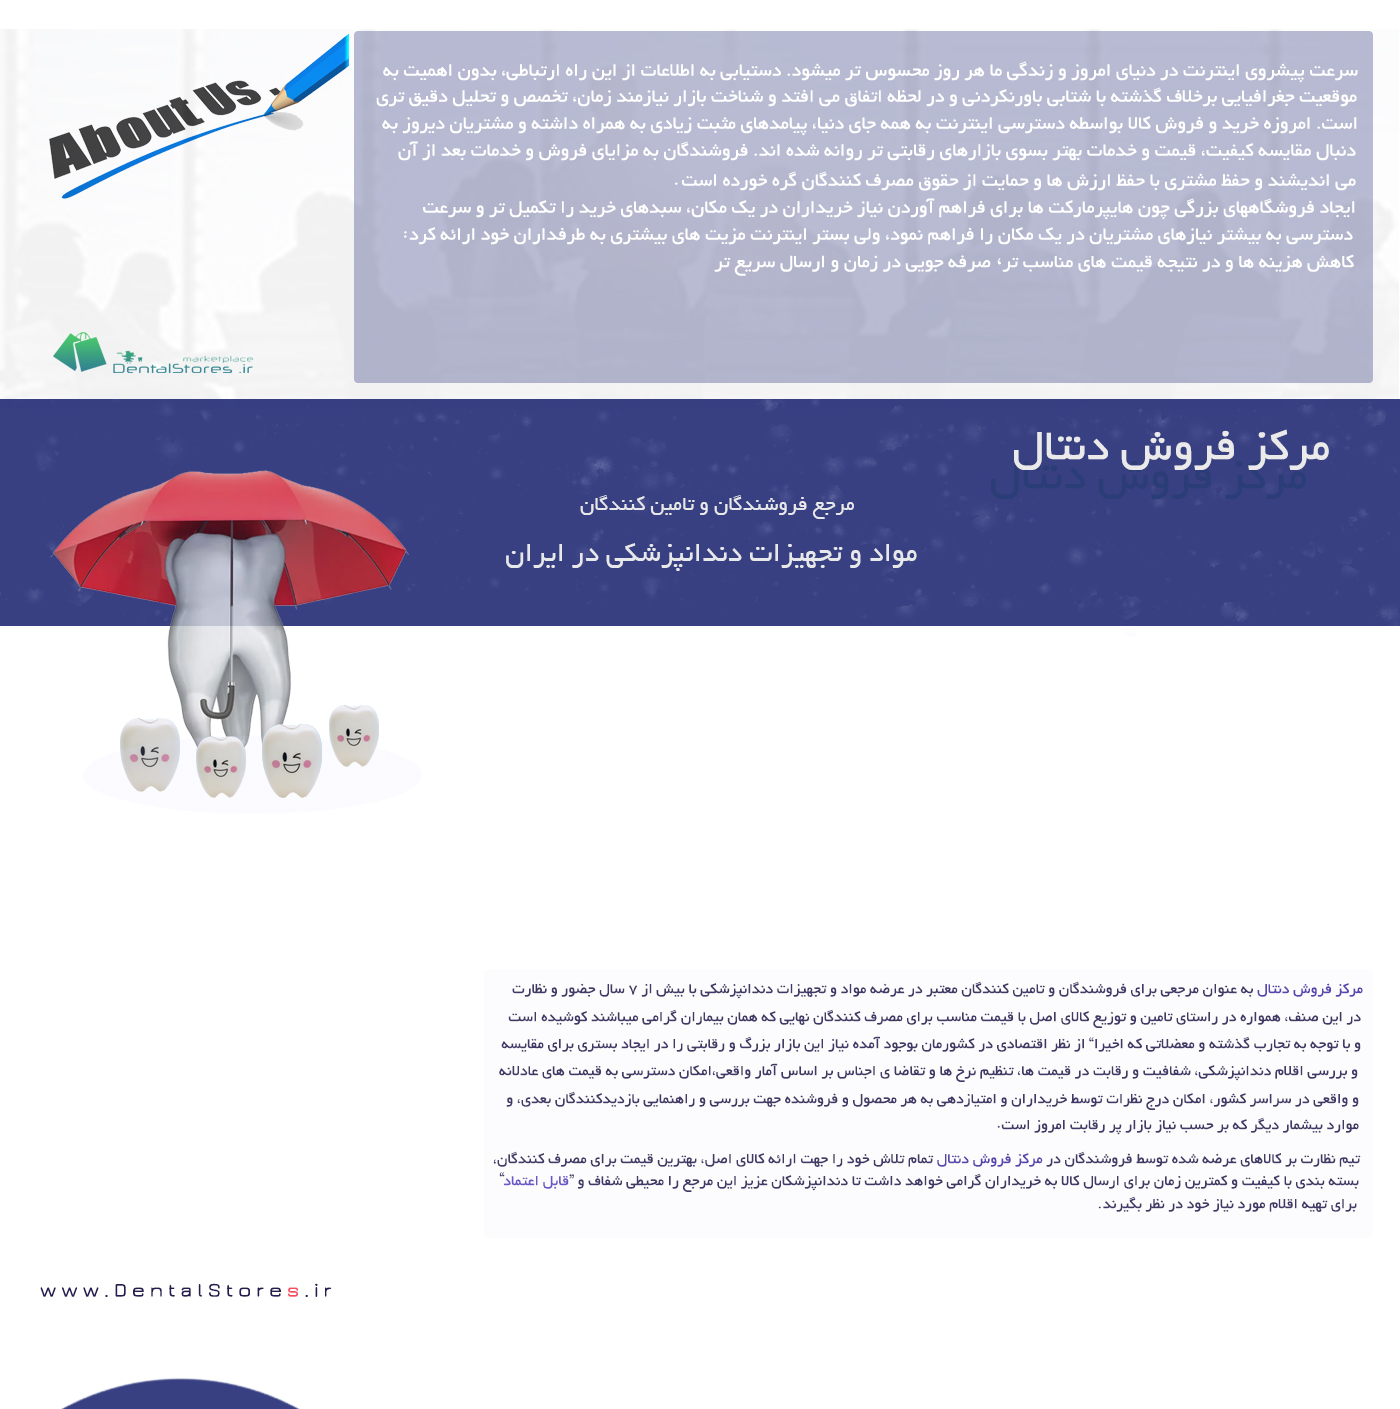 about-us-dental